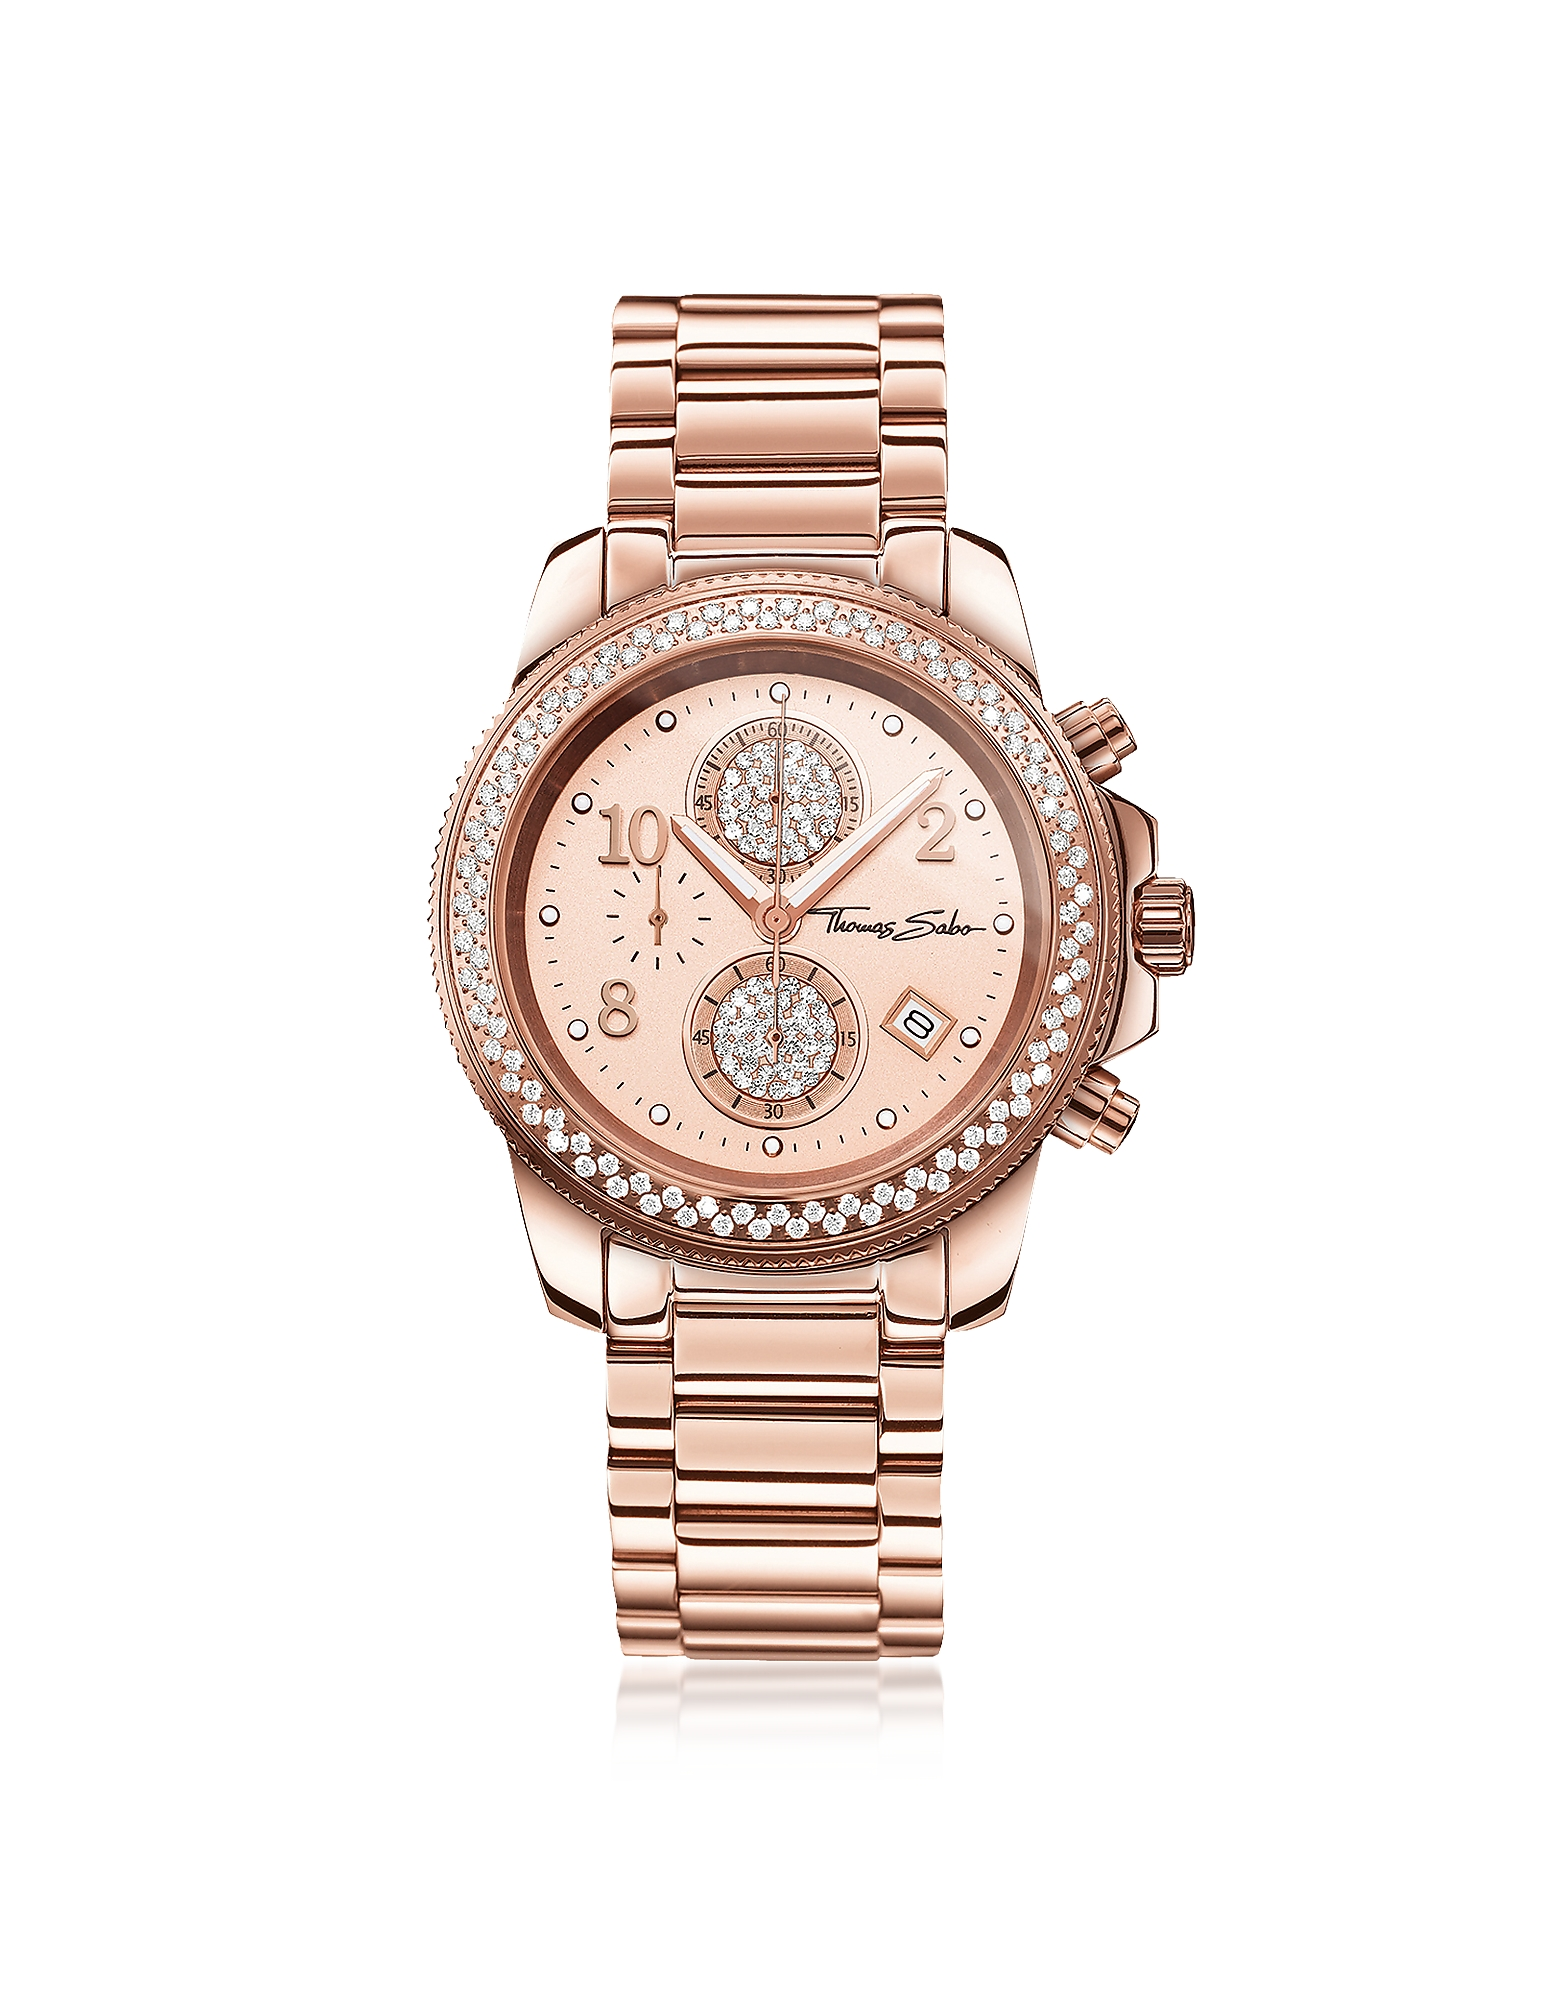 Glam Chrono Rose Gold Stainless Steel Women's Watch w/Crystals